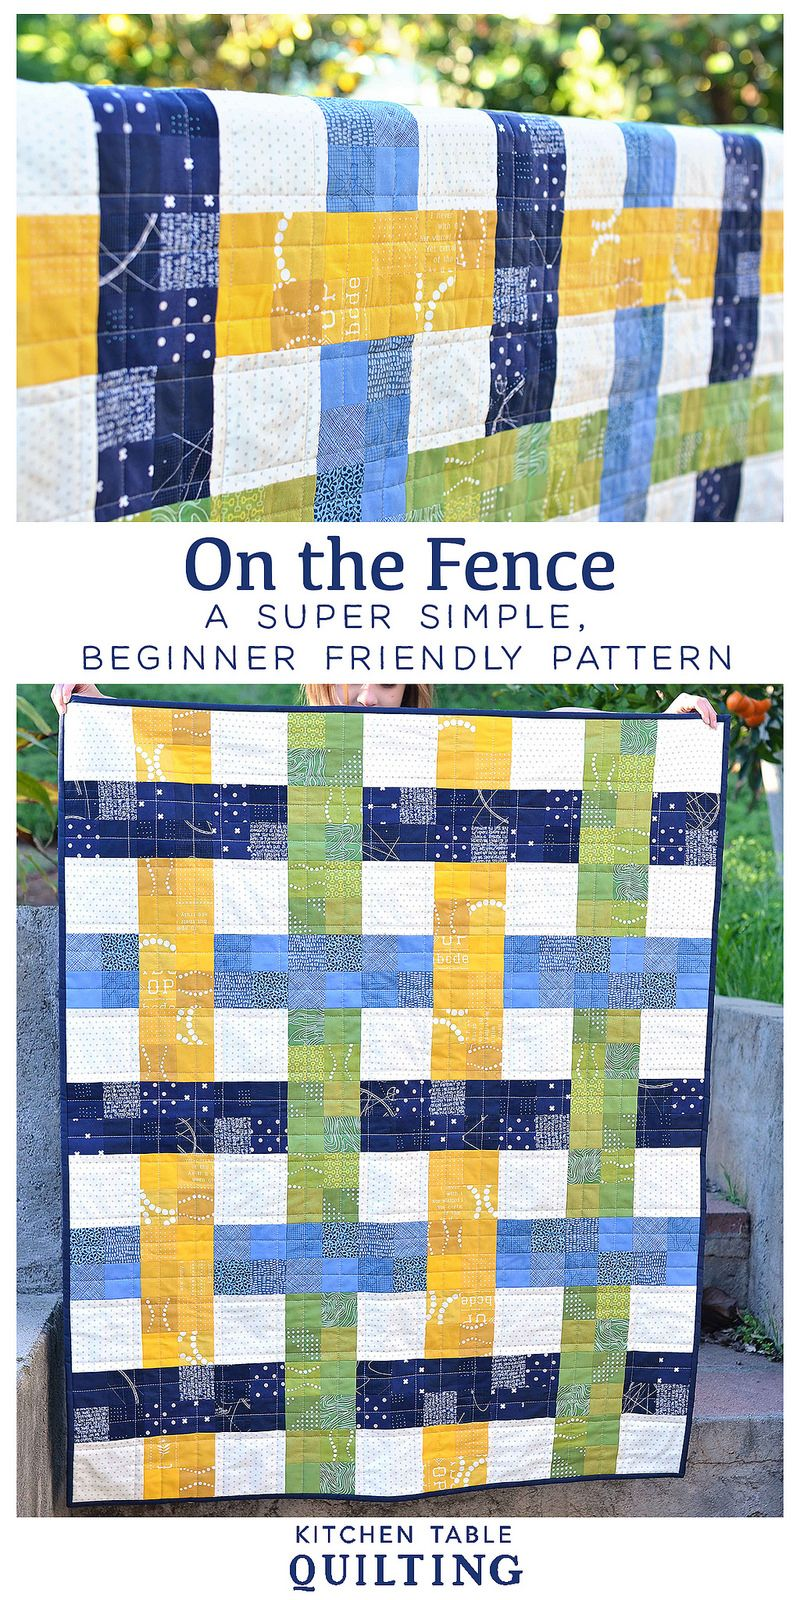 Woven Baby Quilt - On the Fence Quilt Pattern | Muster, Patchwork ...